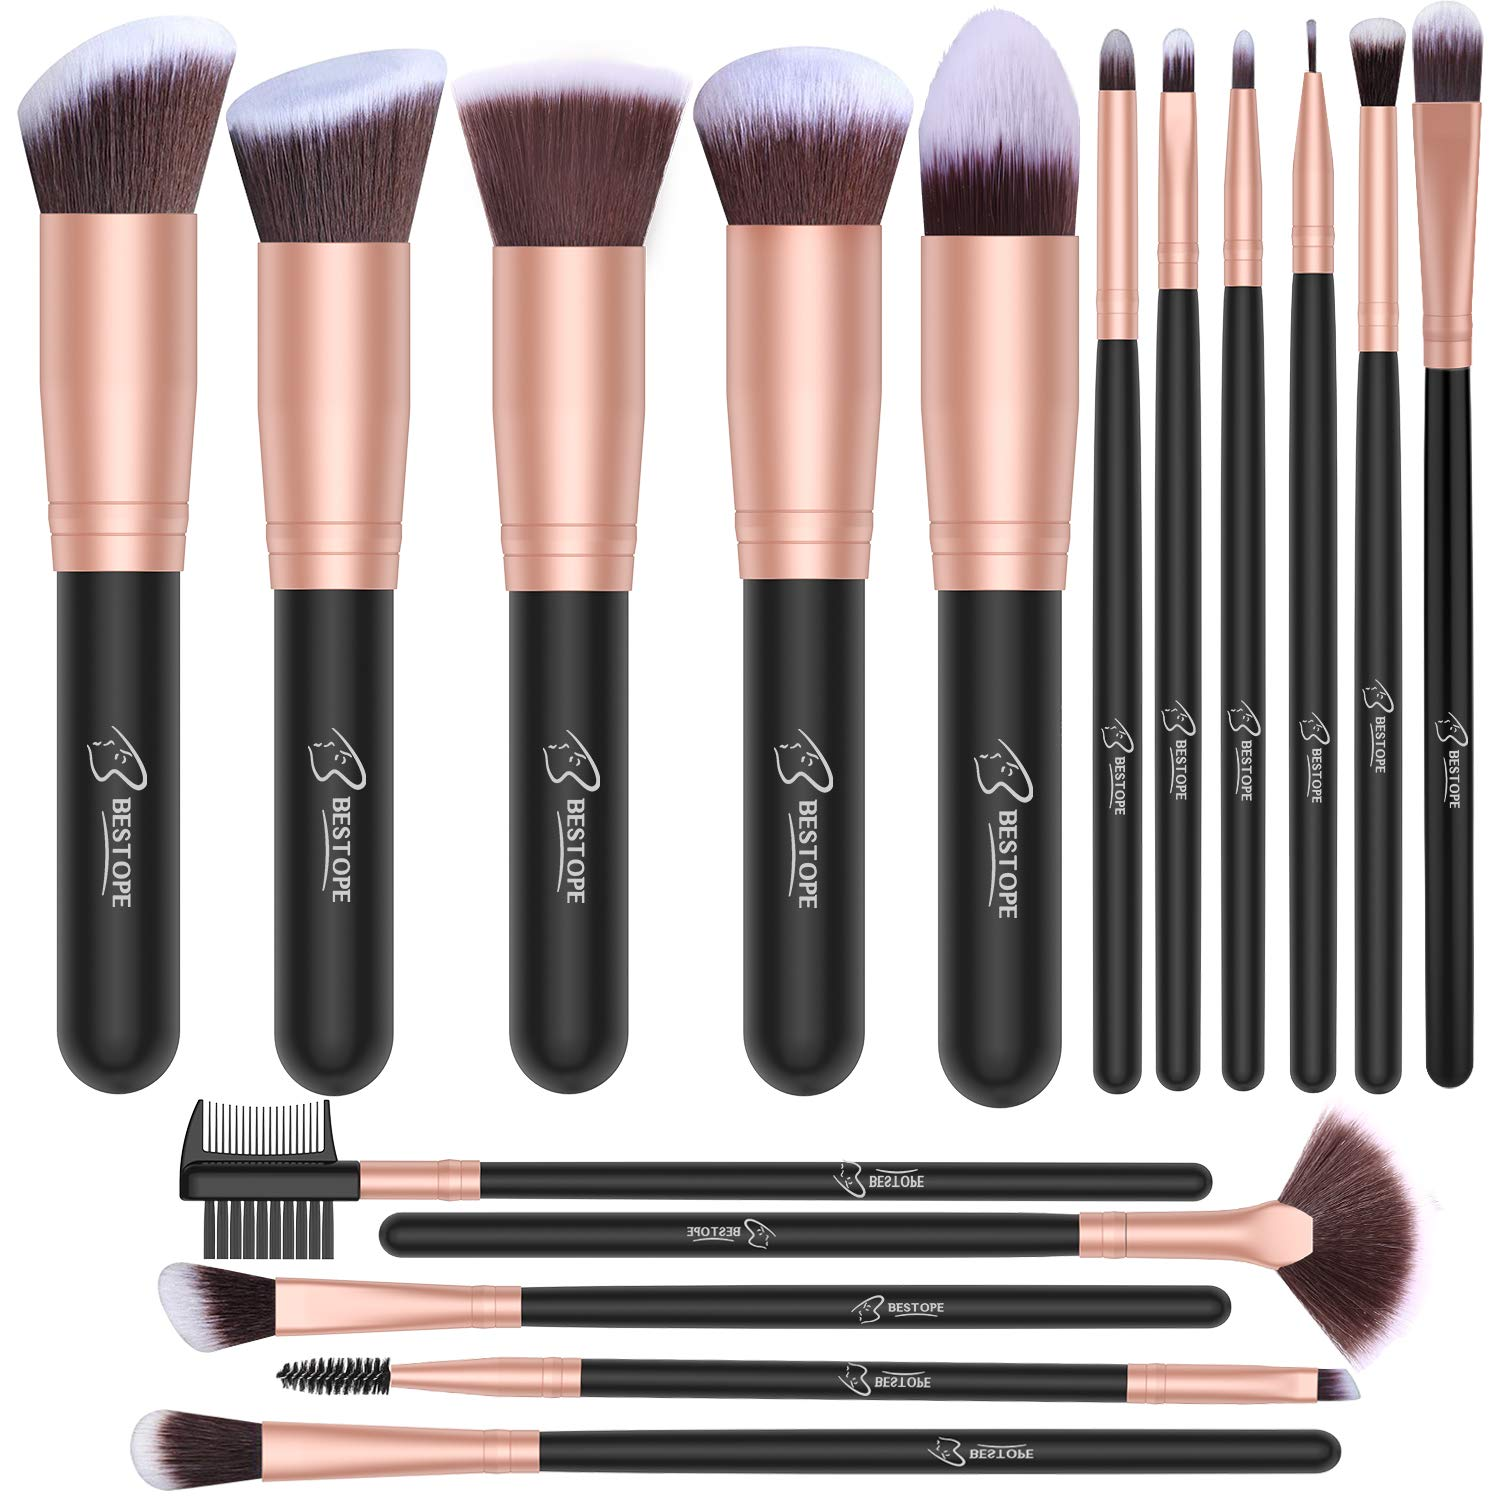 d84e64ee84ae BESTOPE Makeup Brushes 16 PCs Makeup Brush Set Premium Synthetic Foundation  Brush...